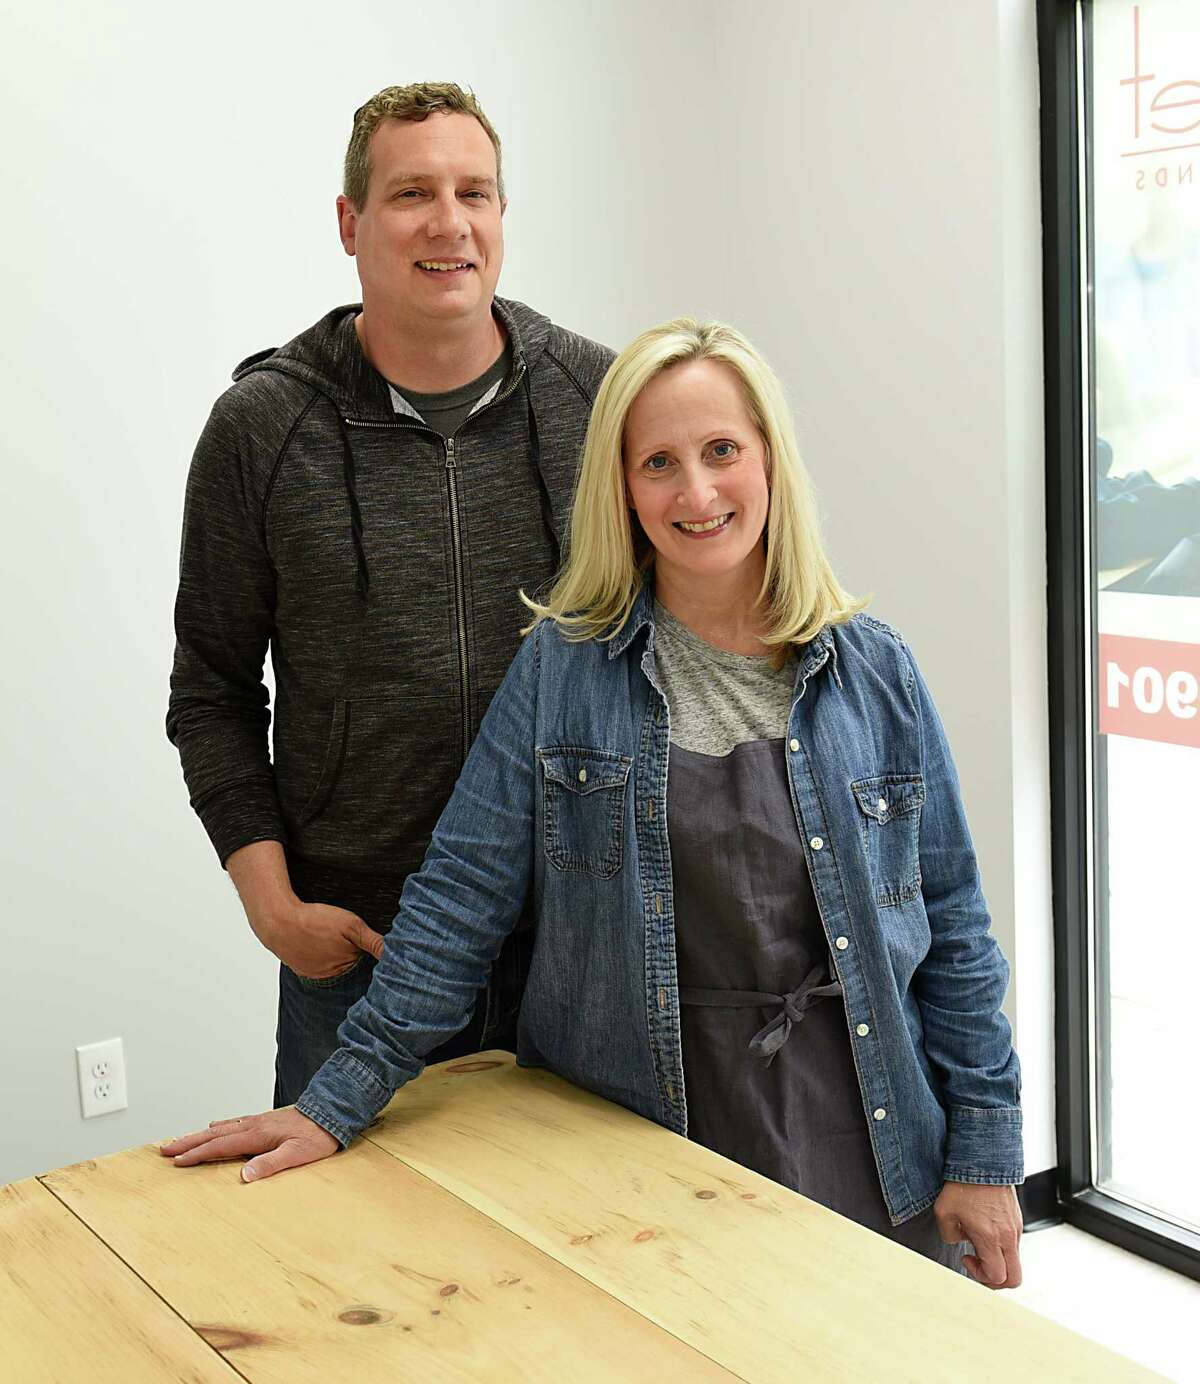 Bake for You Co-owners Justin Carey and Linda Kindlon stand in their store on Friday, May 17, 2019 in Slingerlands, N.Y. (Lori Van Buren/Times Union)